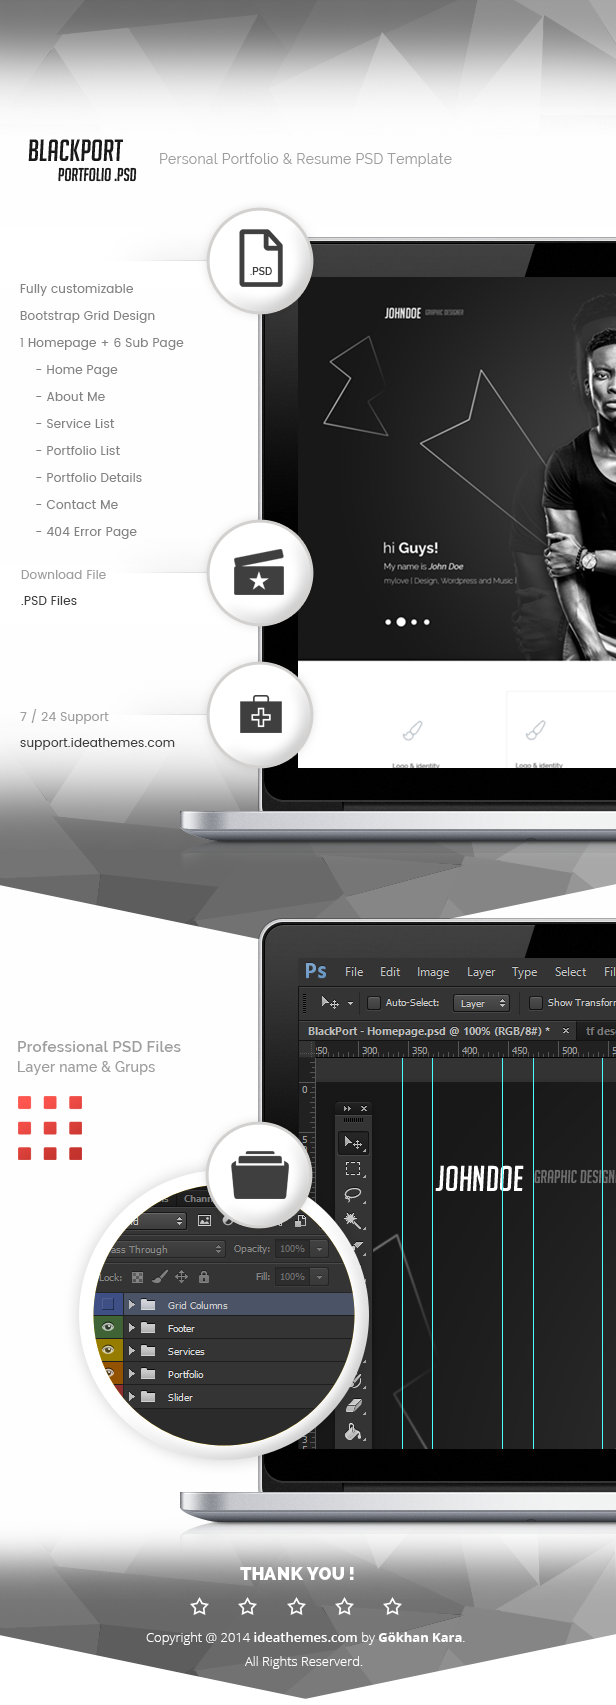 BlackPort - Personal Portfolio & Resume PSD Template - 1